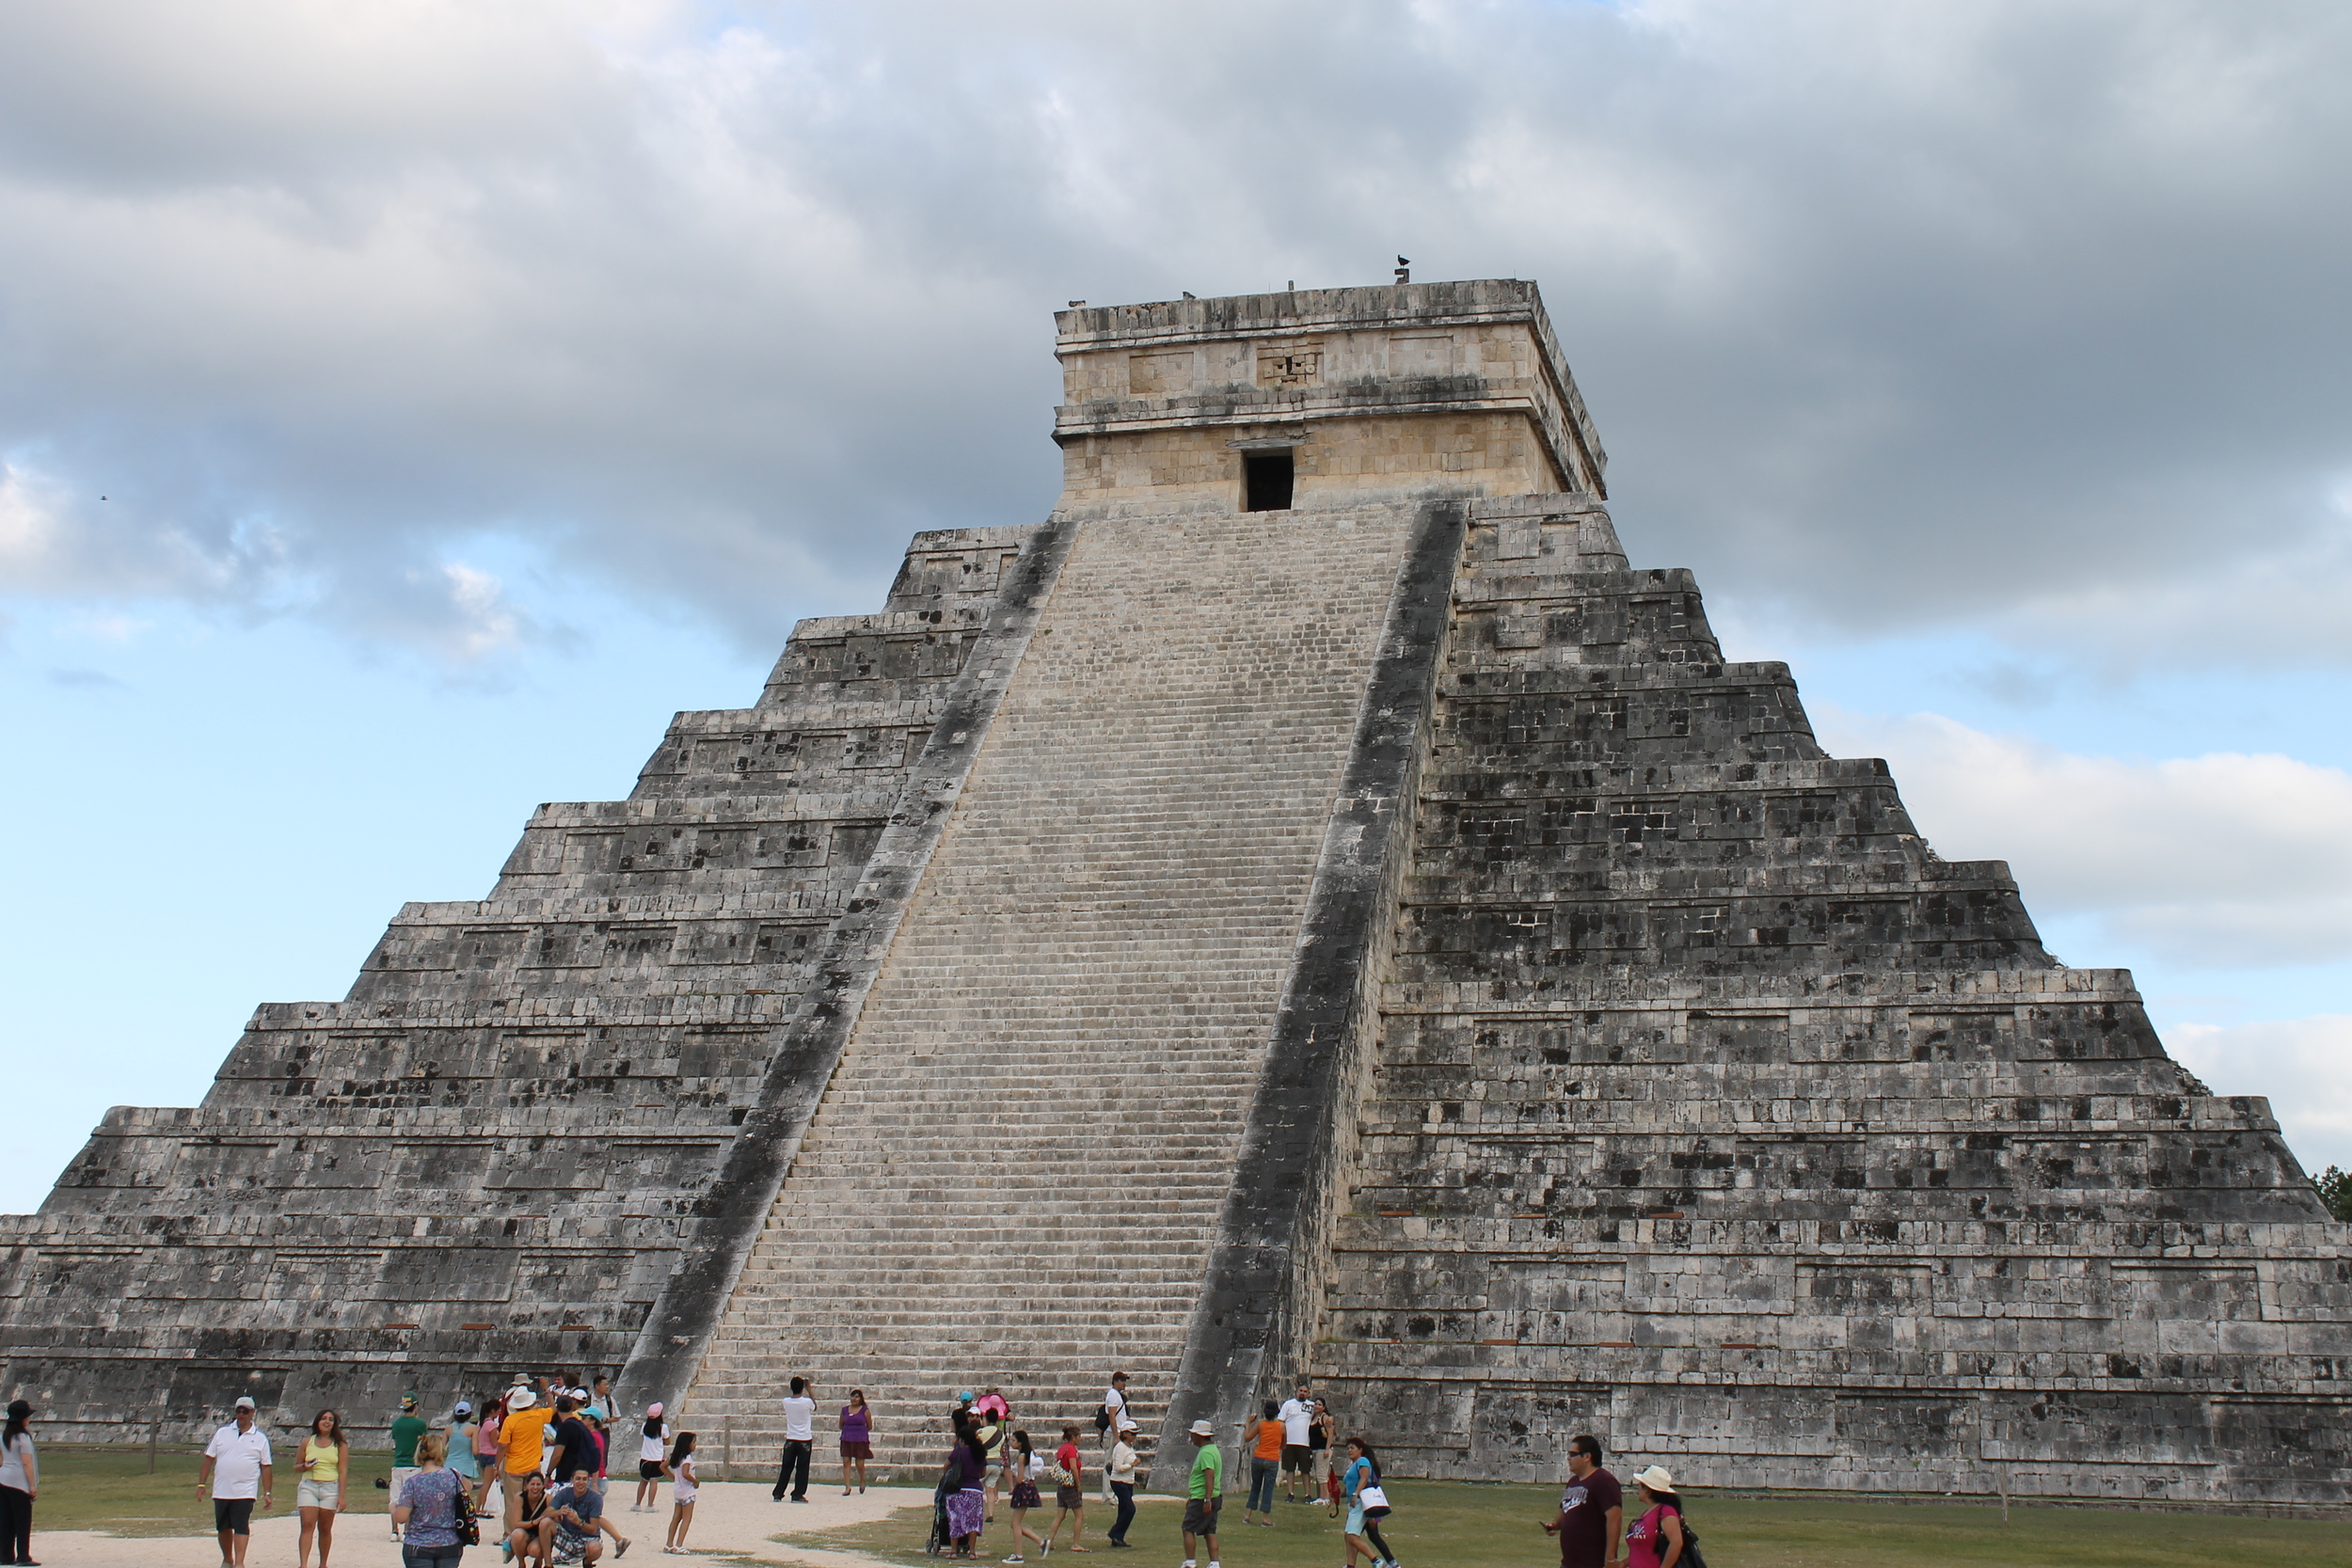 El Castillo, the most popular and iconic building at Chichen Itzá, Yucatán, México